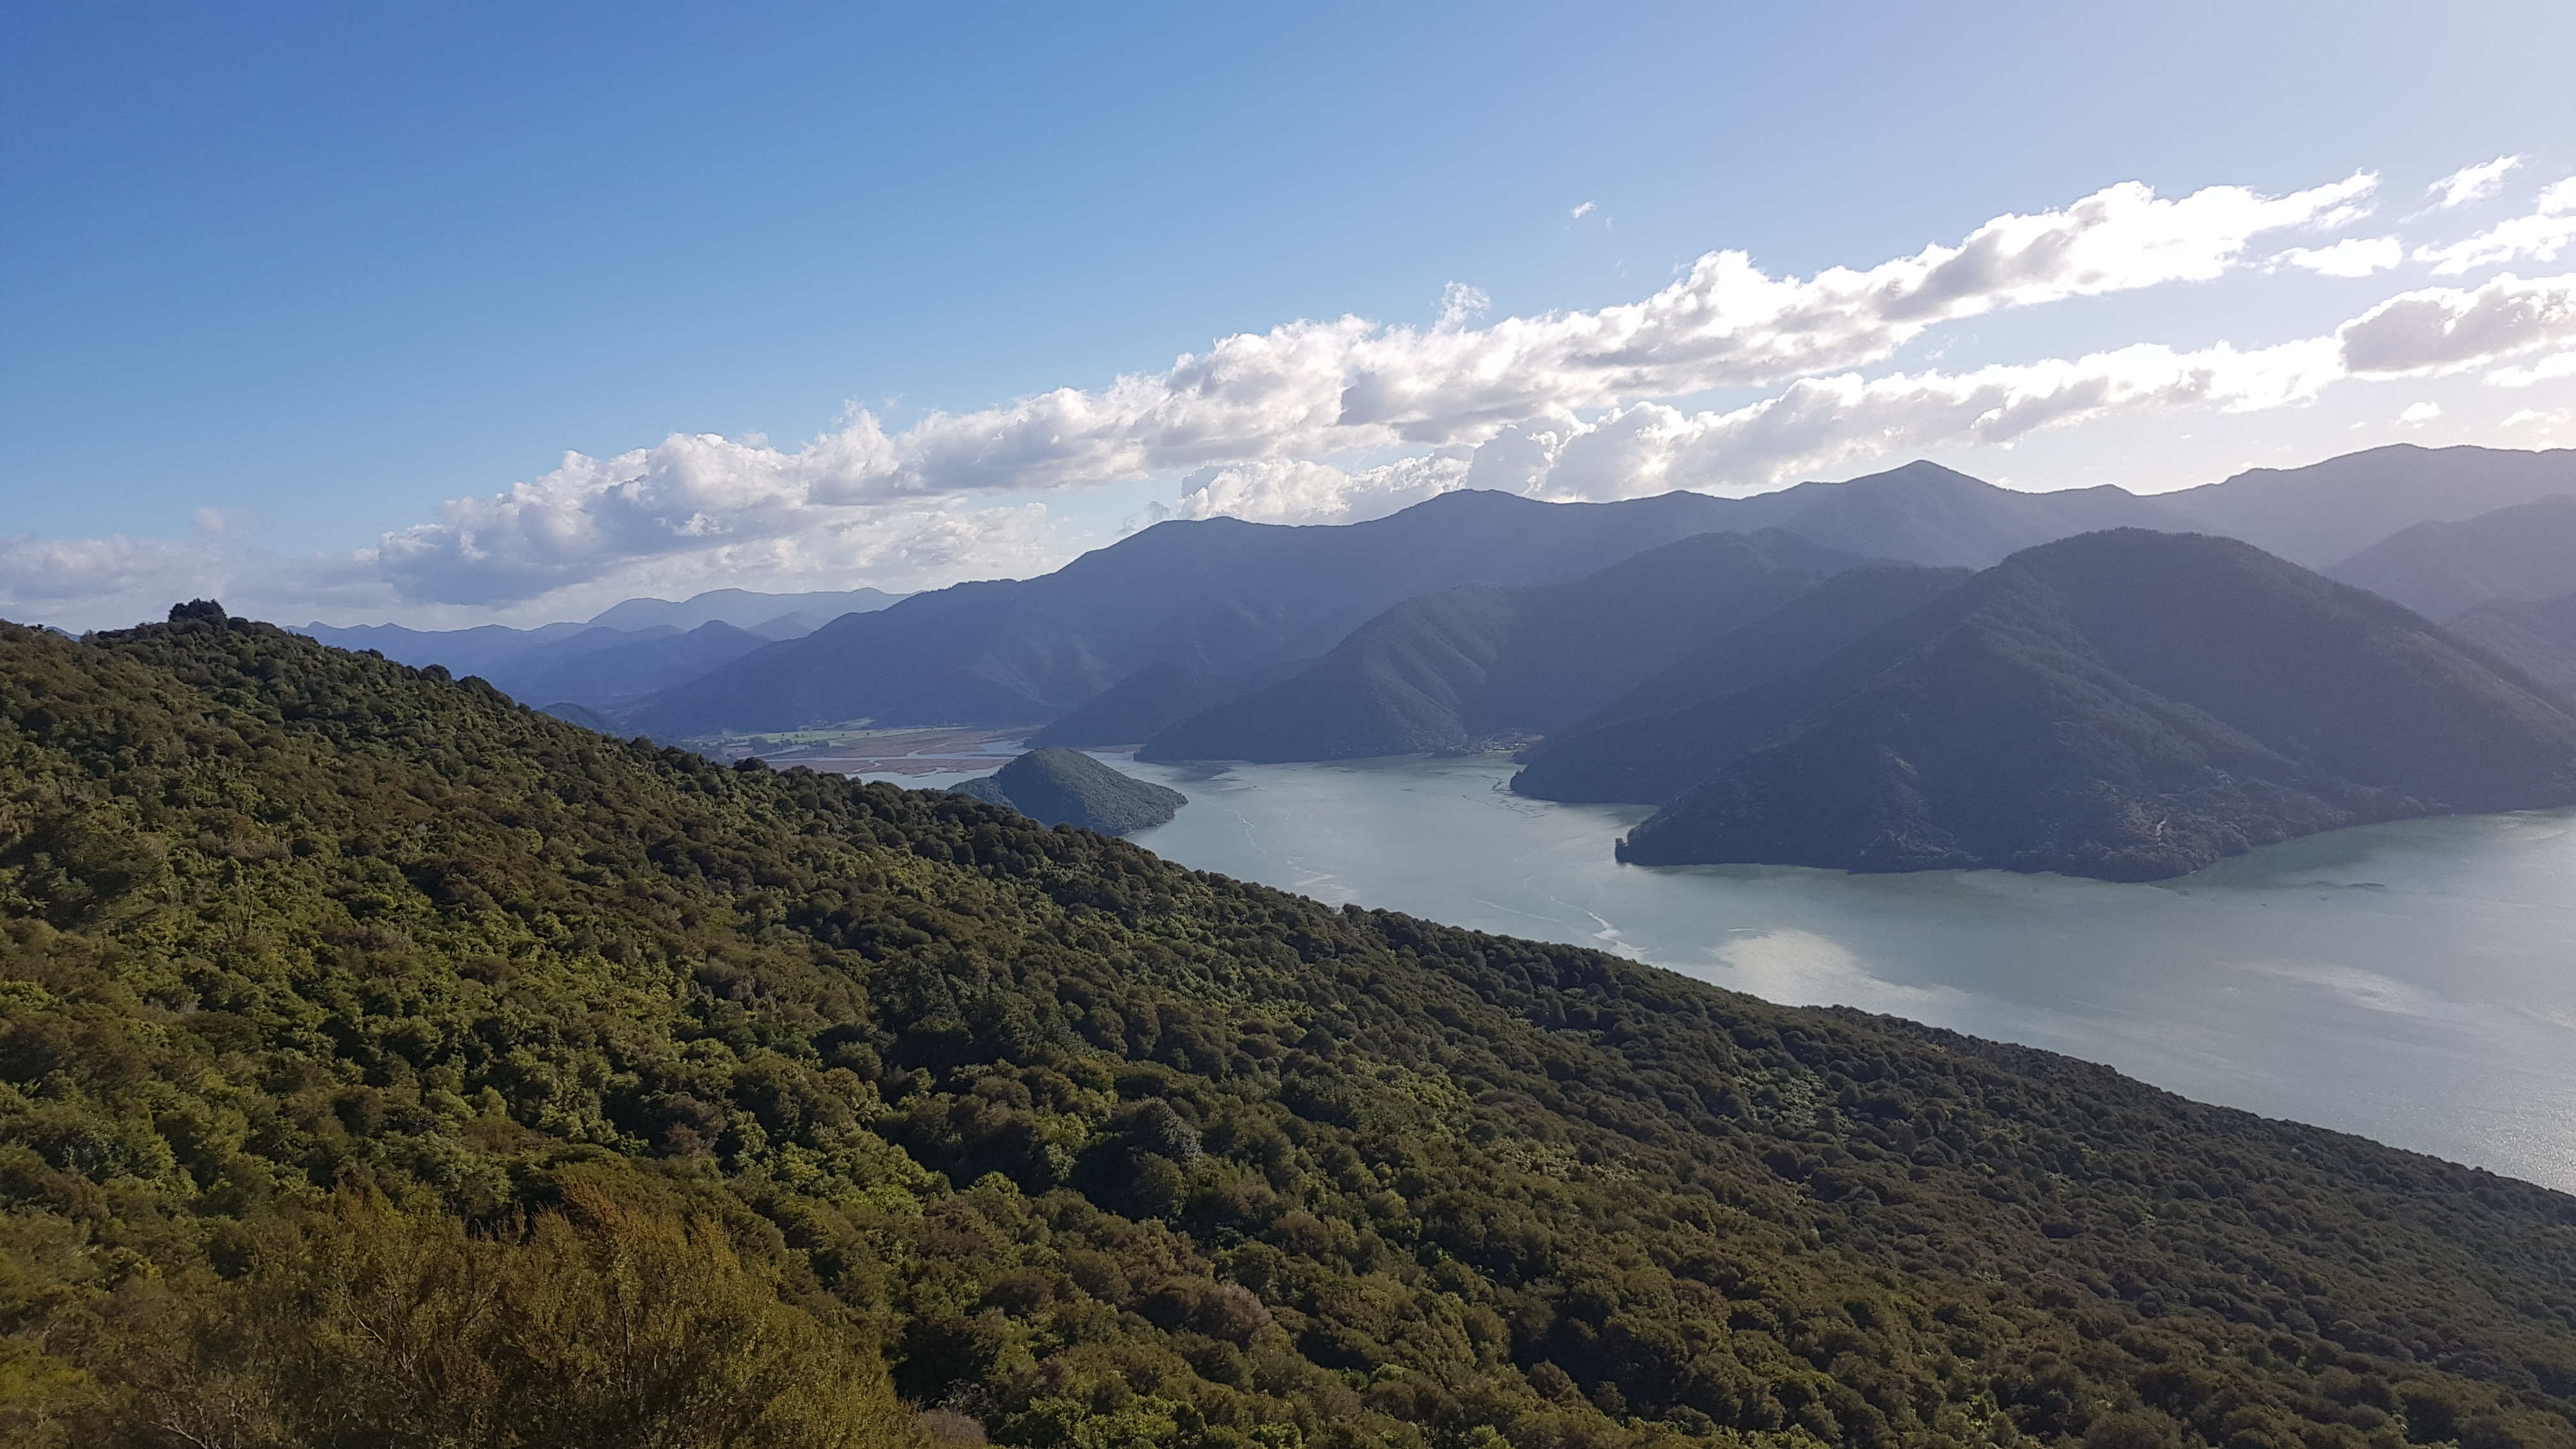 Views towards Havelock from Mt Cawte